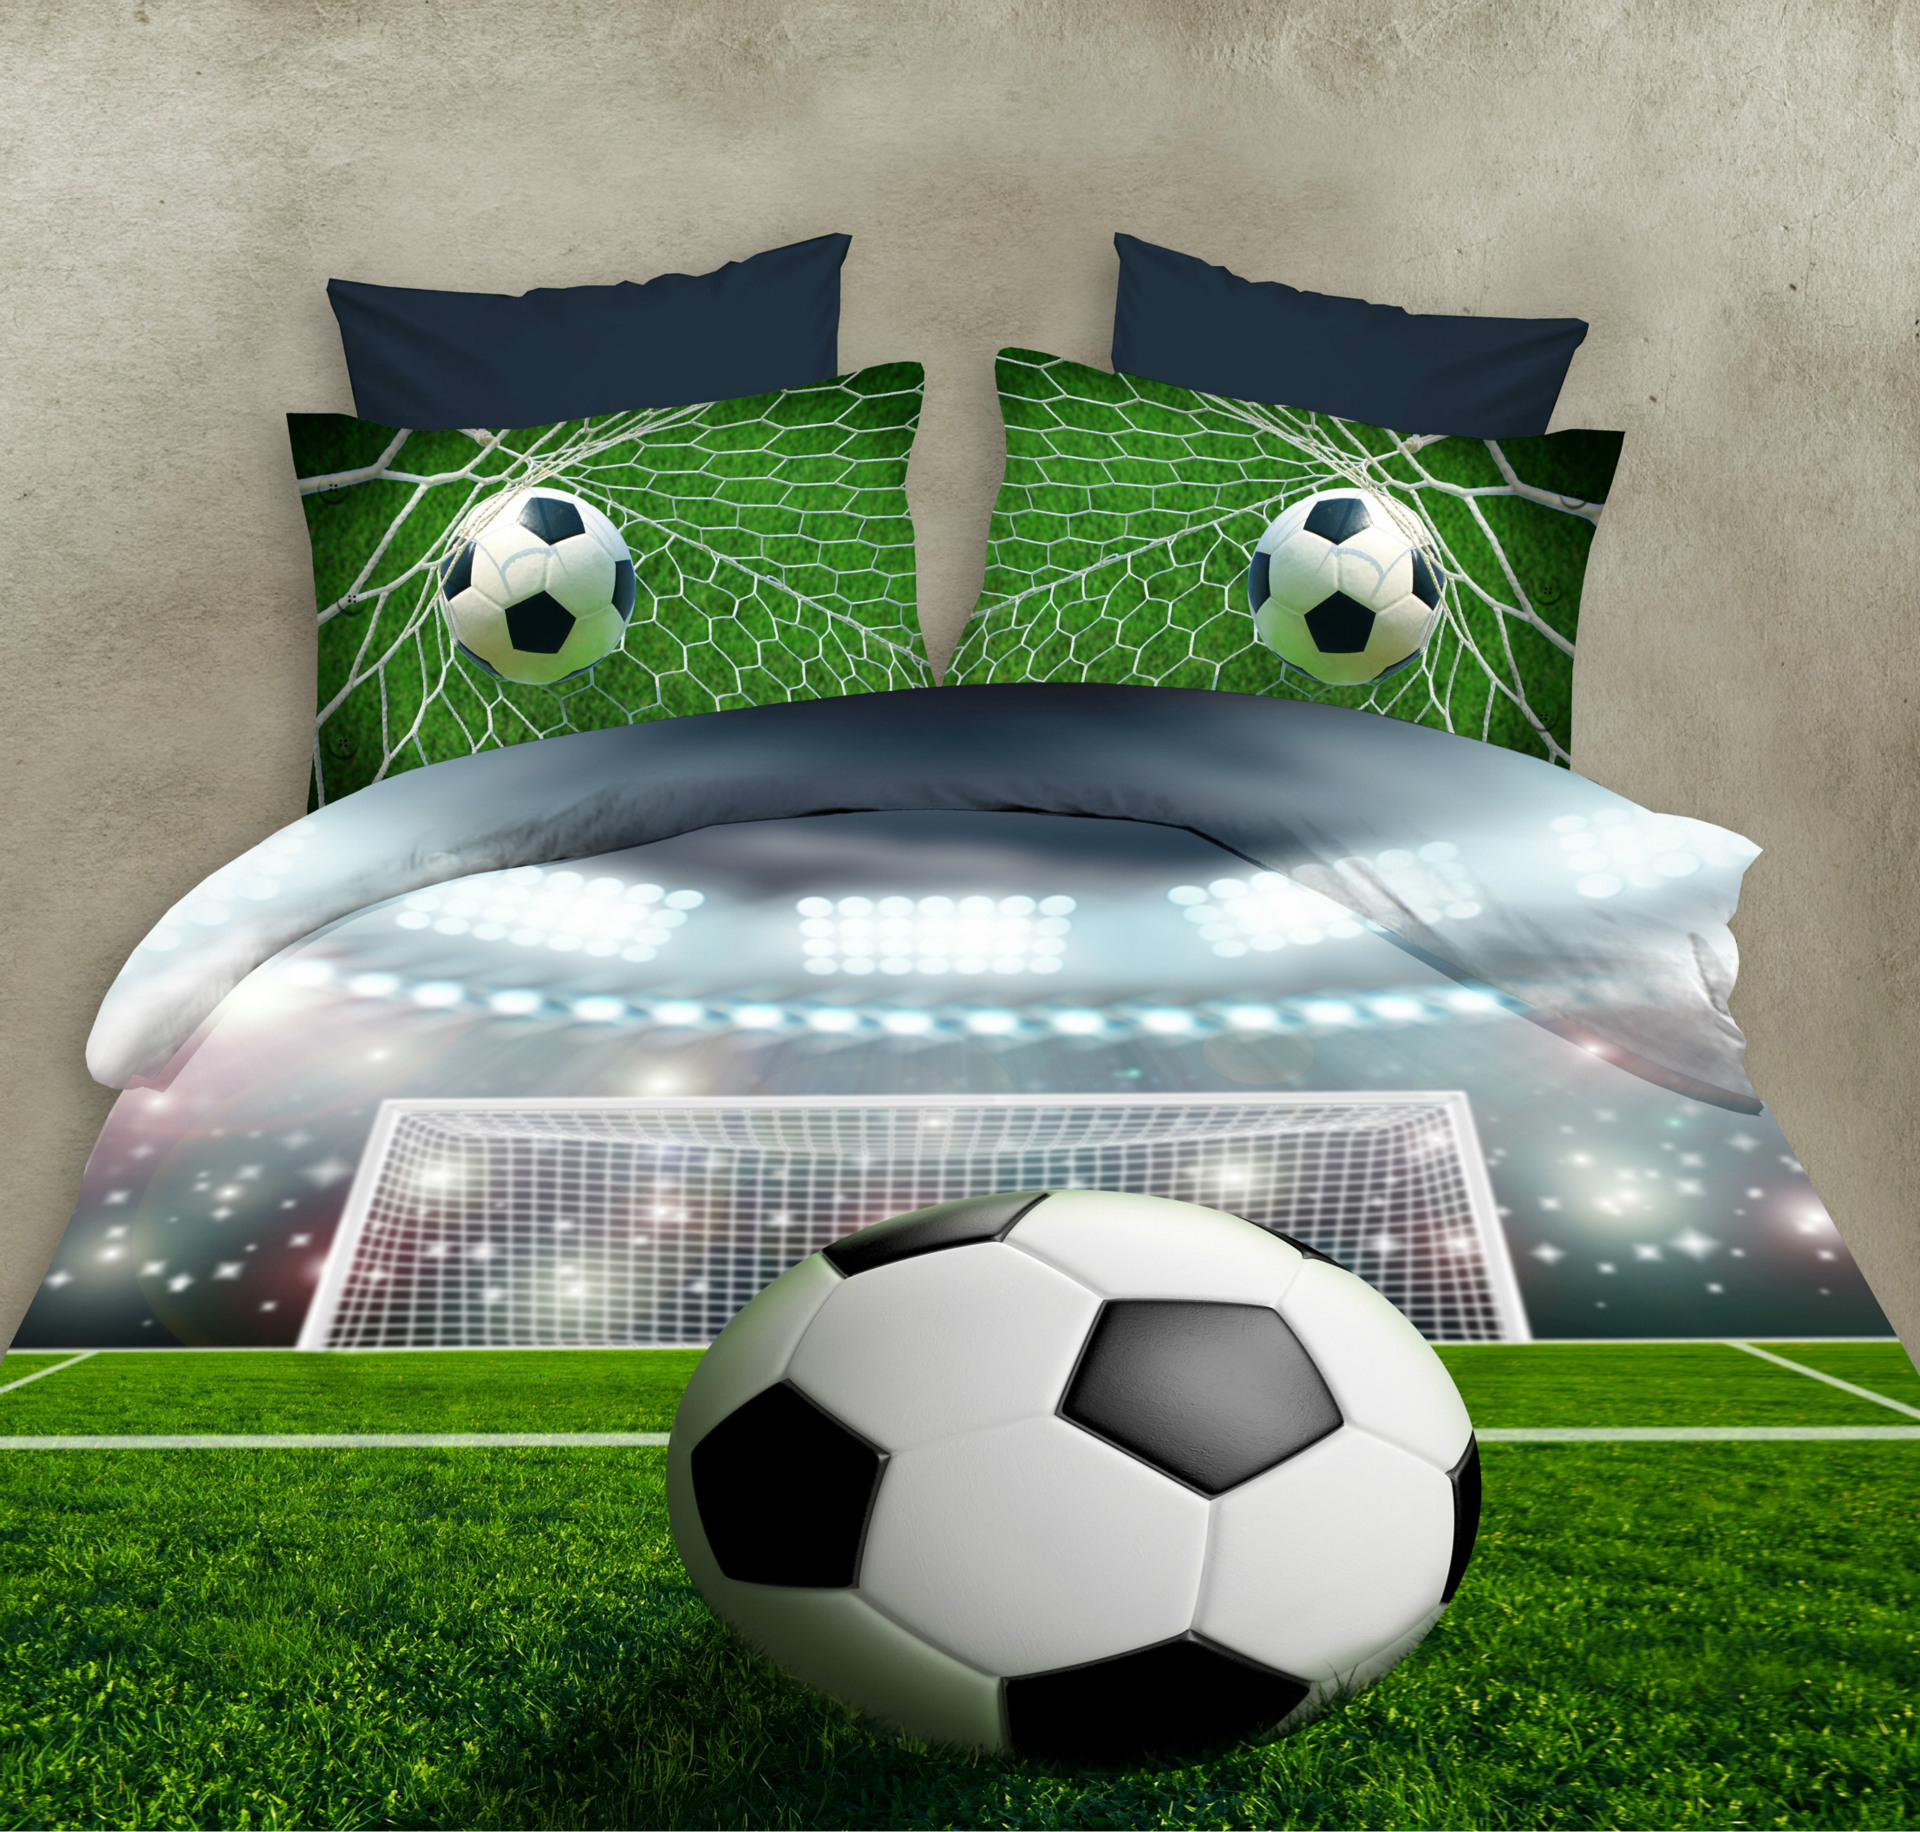 online buy wholesale soccer bedding from china soccer bedding  - new arrive d soccer bedding set d pattern printed bedding set queen sizepcs bedclothes duvet